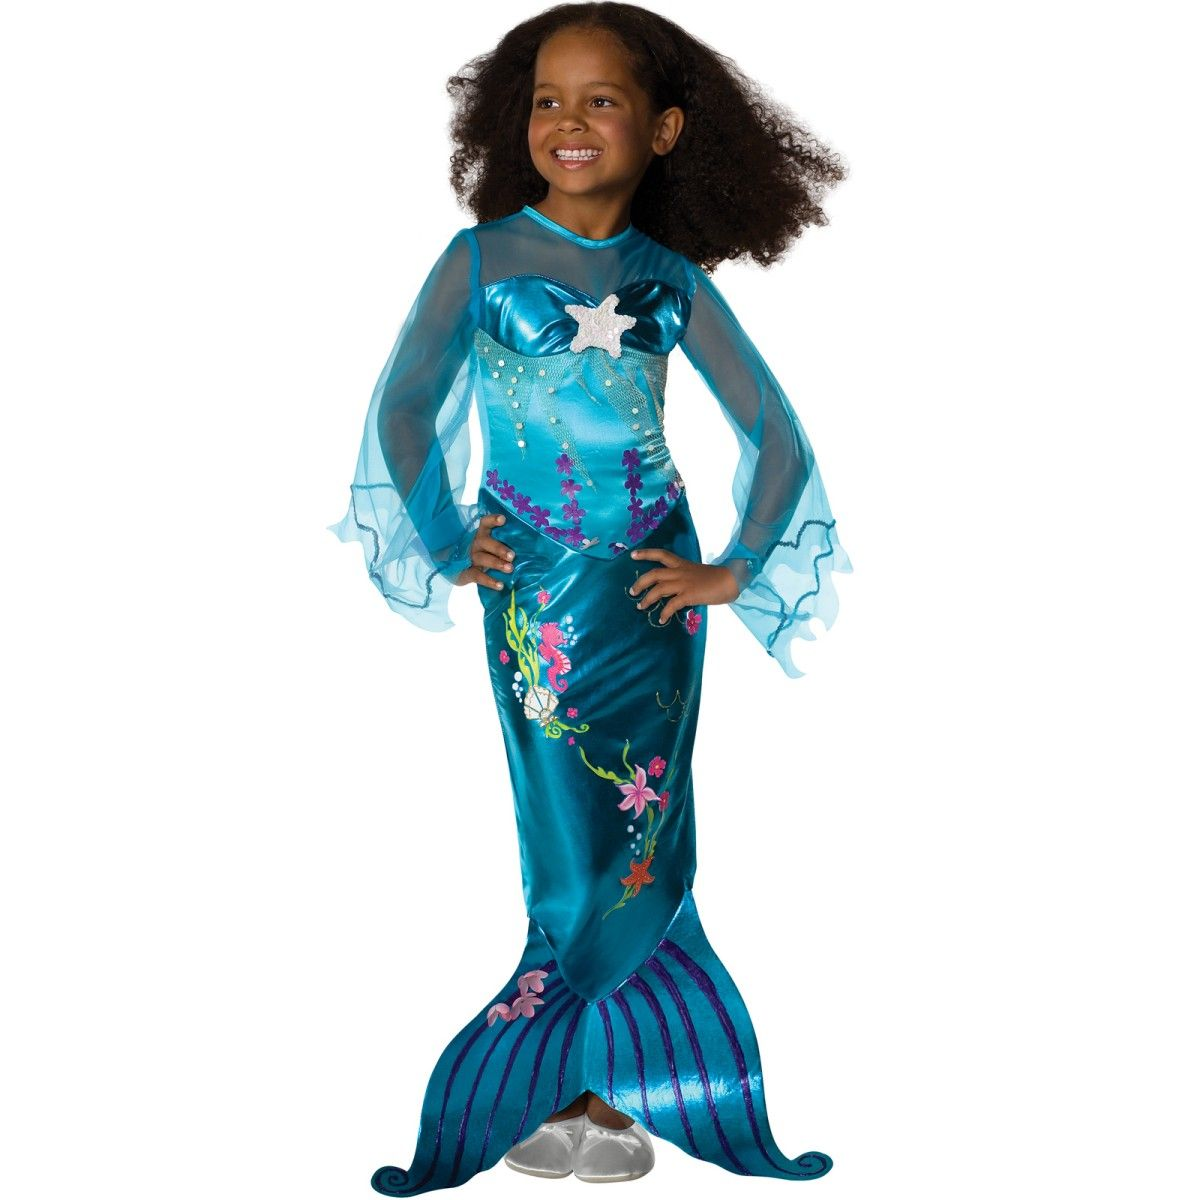 girl holloween costumes | Girls Halloween Costumes - Colorful Girls ...